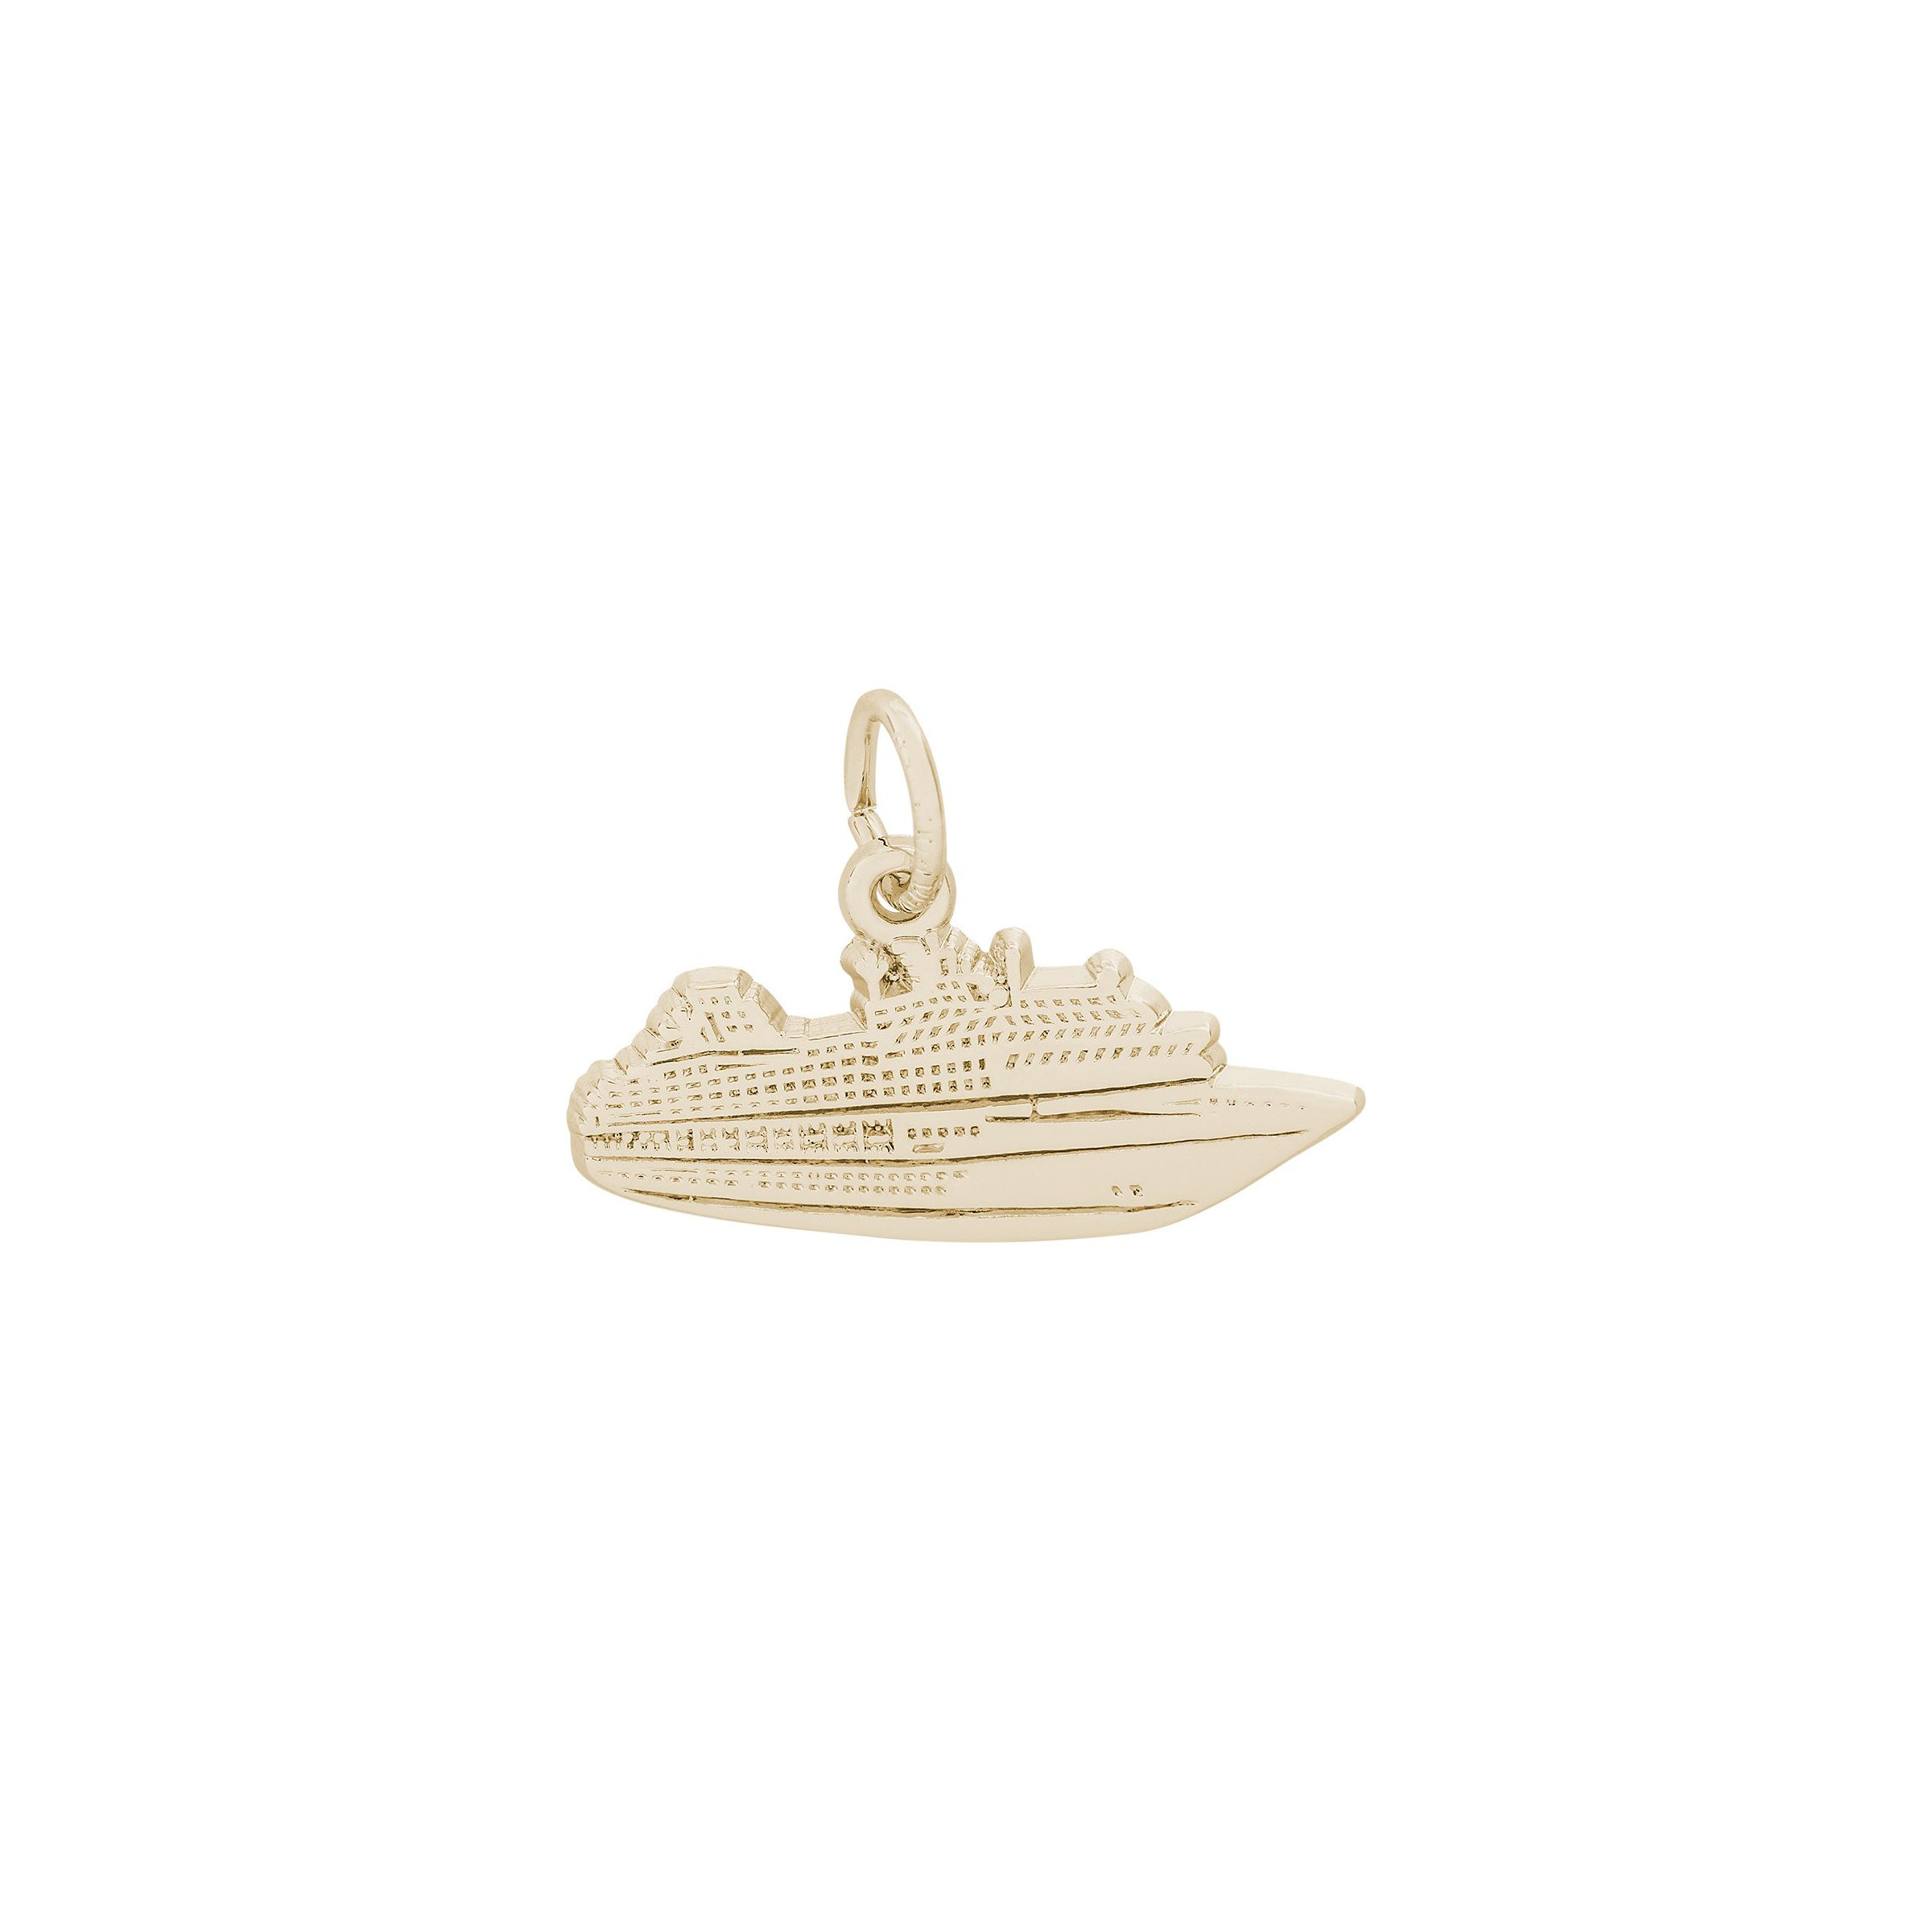 Cruise Ship Charm, 14K Yellow Gold